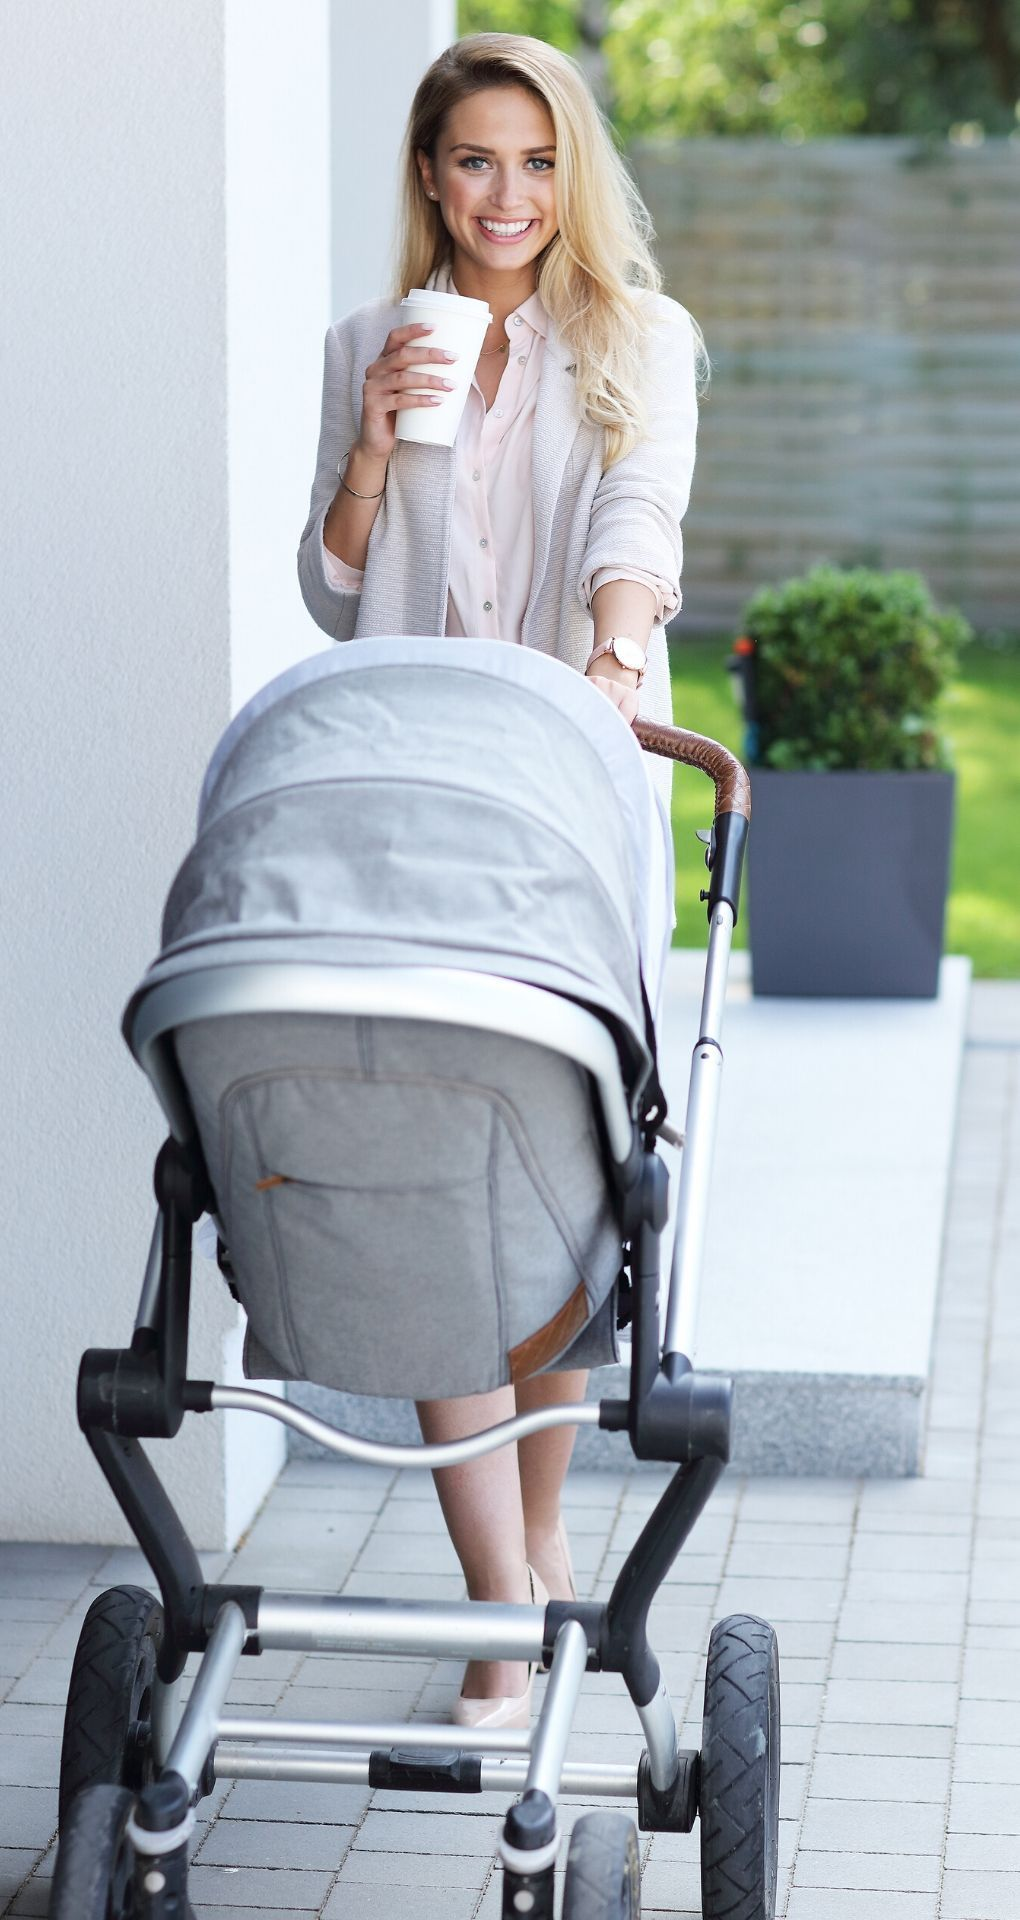 mother with baby buggy